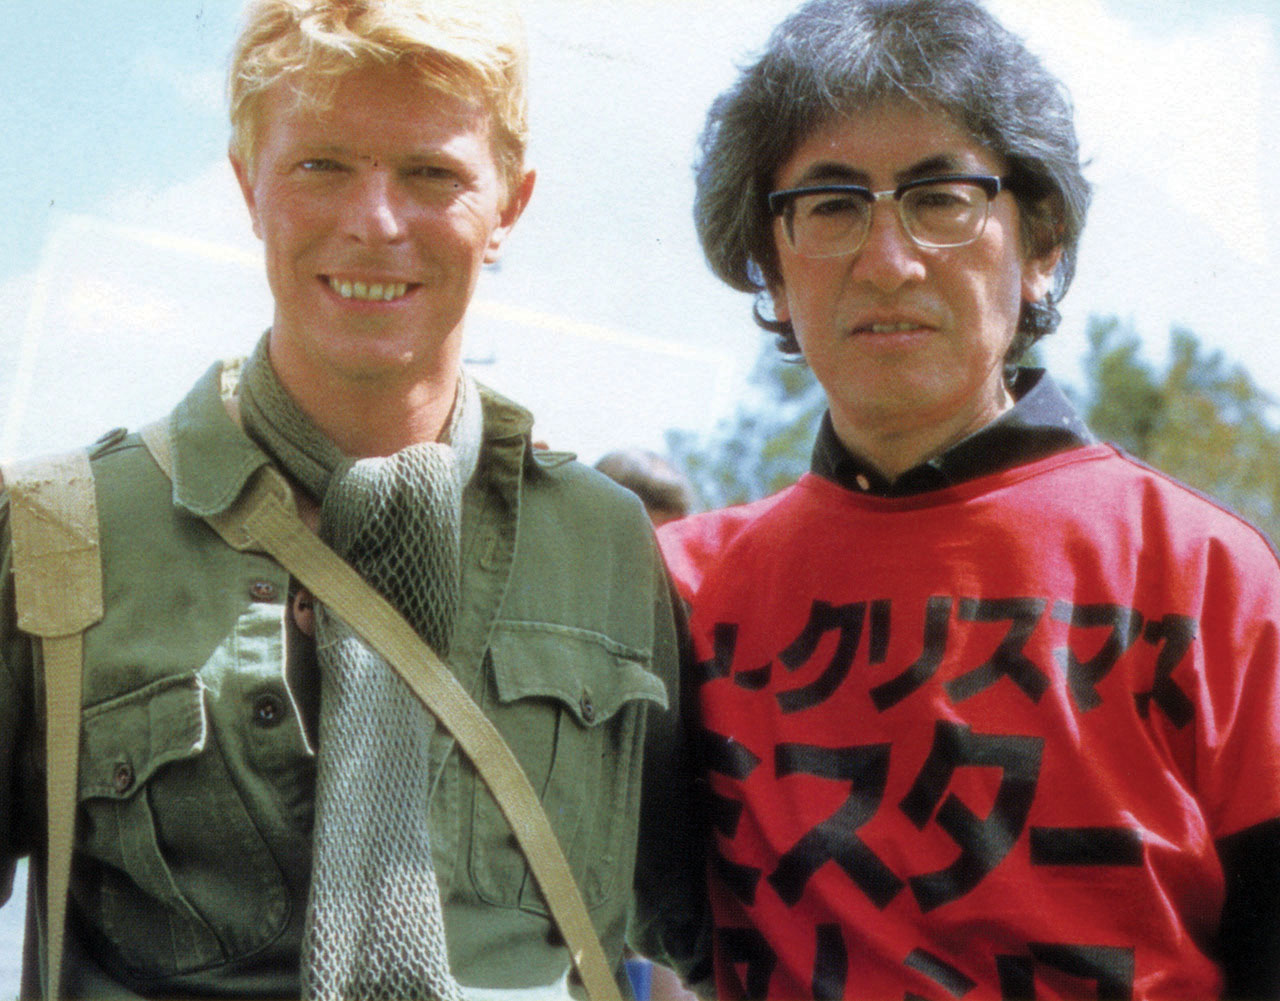 Nagisa Ôshima and David Bowie on location for  Merry Christmas Mr. Lawrence  (1983).